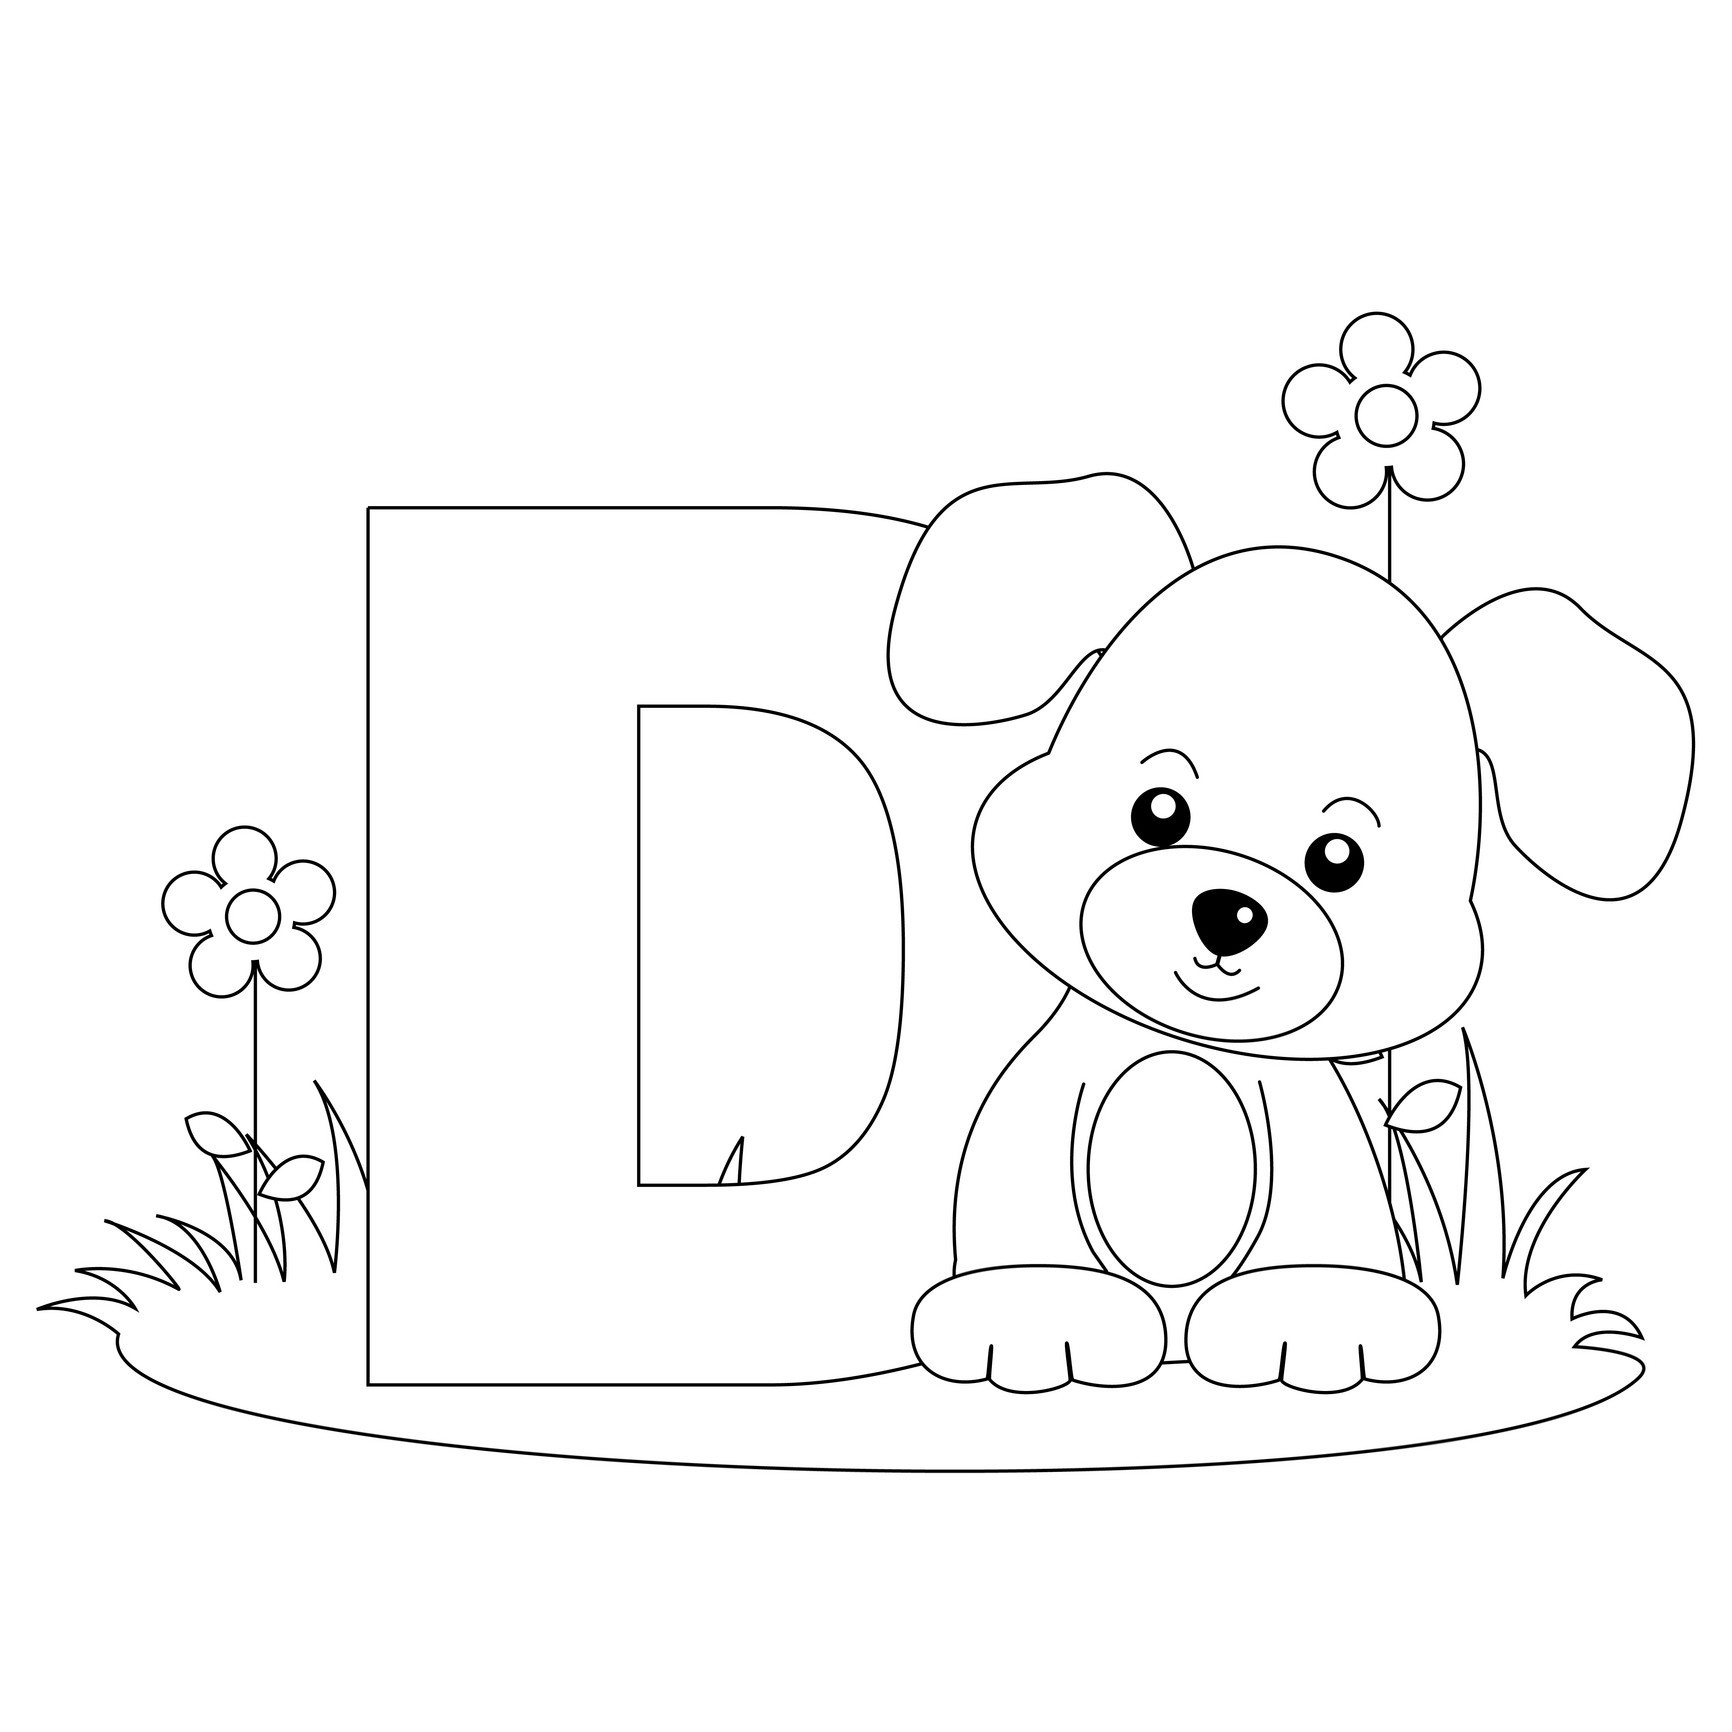 Animal Alphabet Coloring Pages  Collection 13g - To print for your project